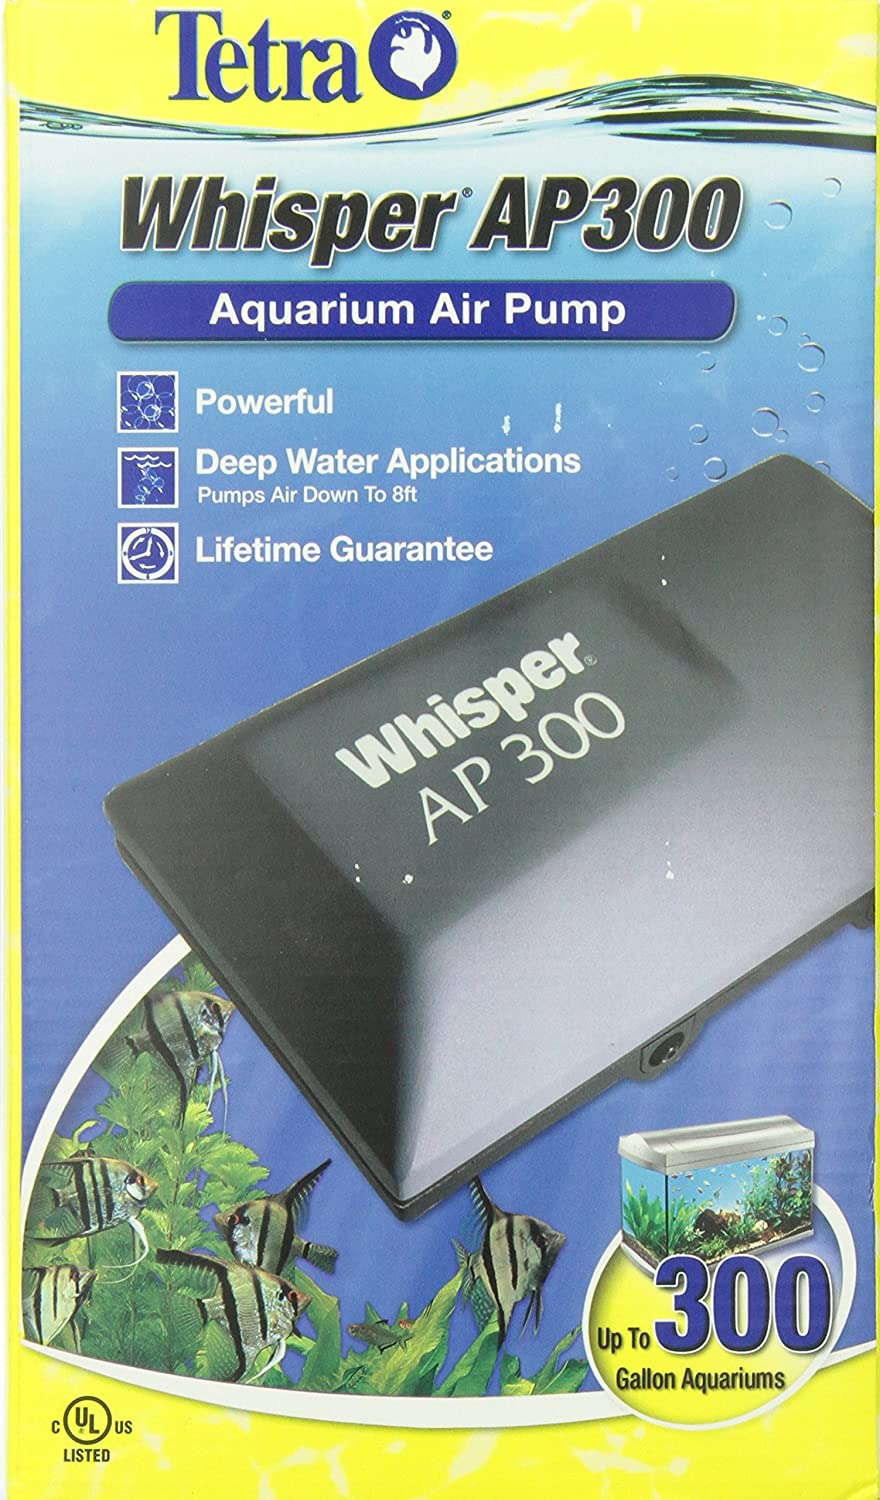 91Zm5Fak 4L._SL1500_ amazon com tetra 26075 whisper aquarium air pump ap300, up to  at gsmportal.co